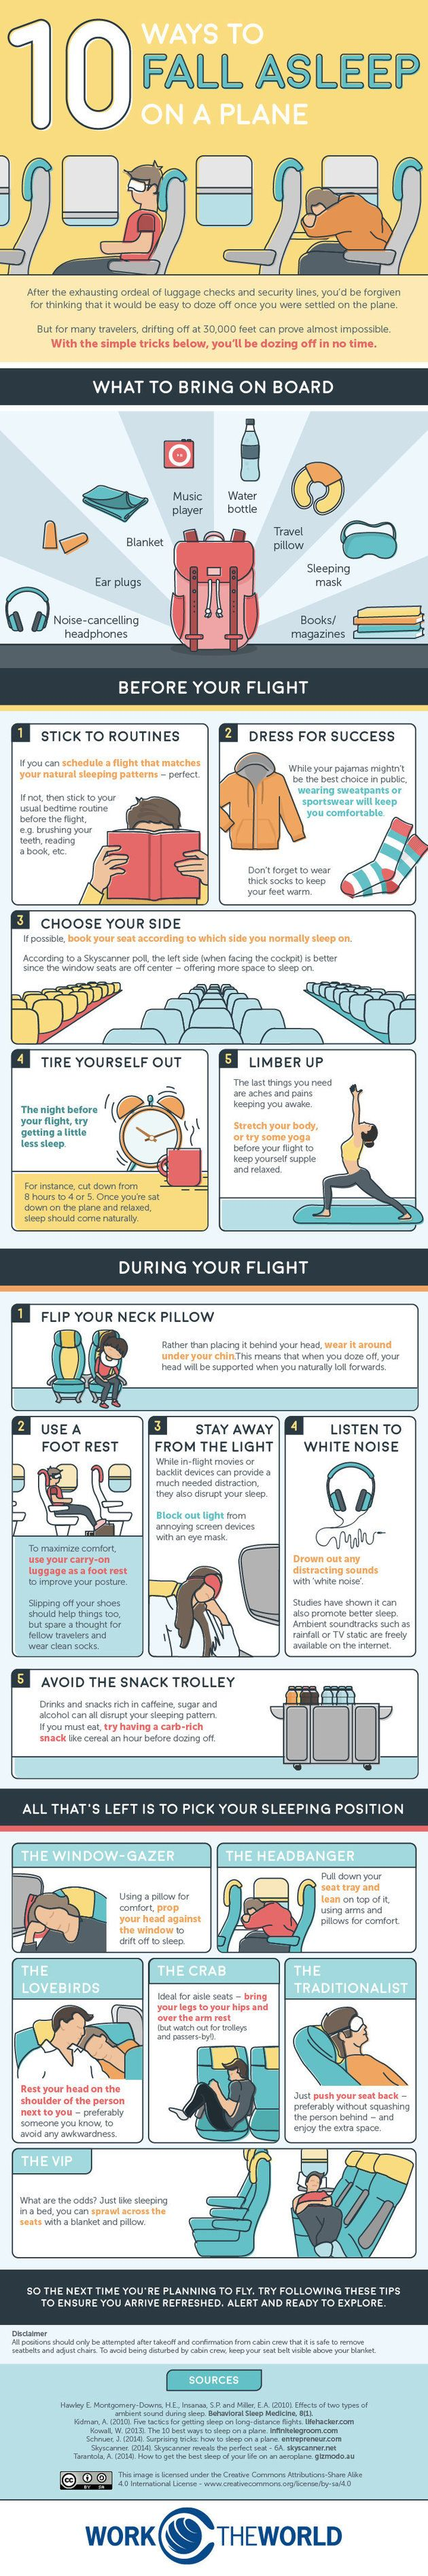 10 Tricks For Falling Asleep On A Plane -- And Staying That Way #TravelTips #Travel